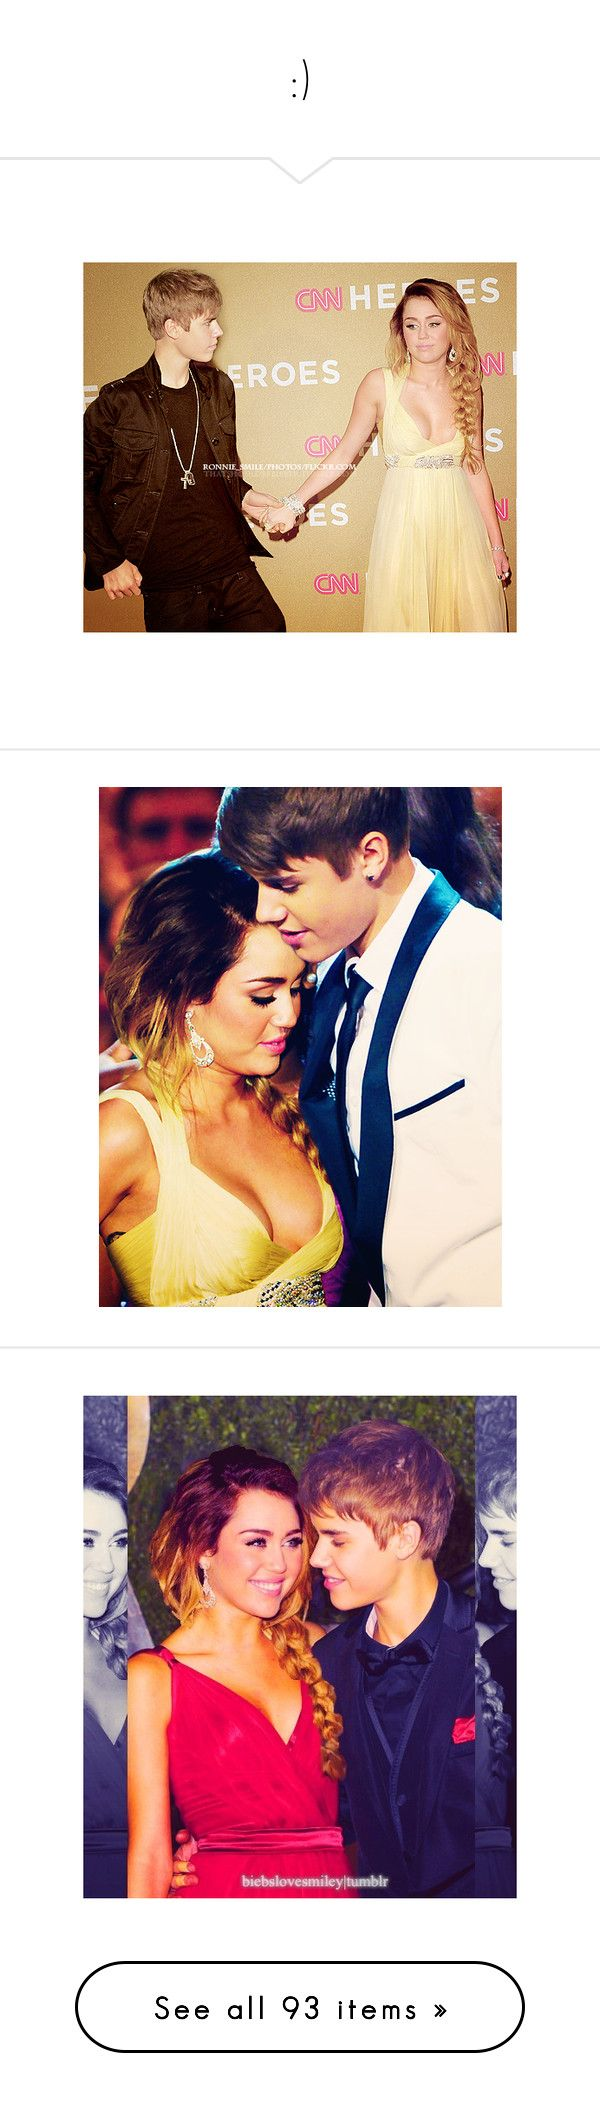 """:)"" by mc-shopaholic94 ❤ liked on Polyvore featuring jiley, justin bieber, miley cyrus, friends, pregnant miley, miley, justin, celebs, miley and justin and celebrities - miley cyrus"